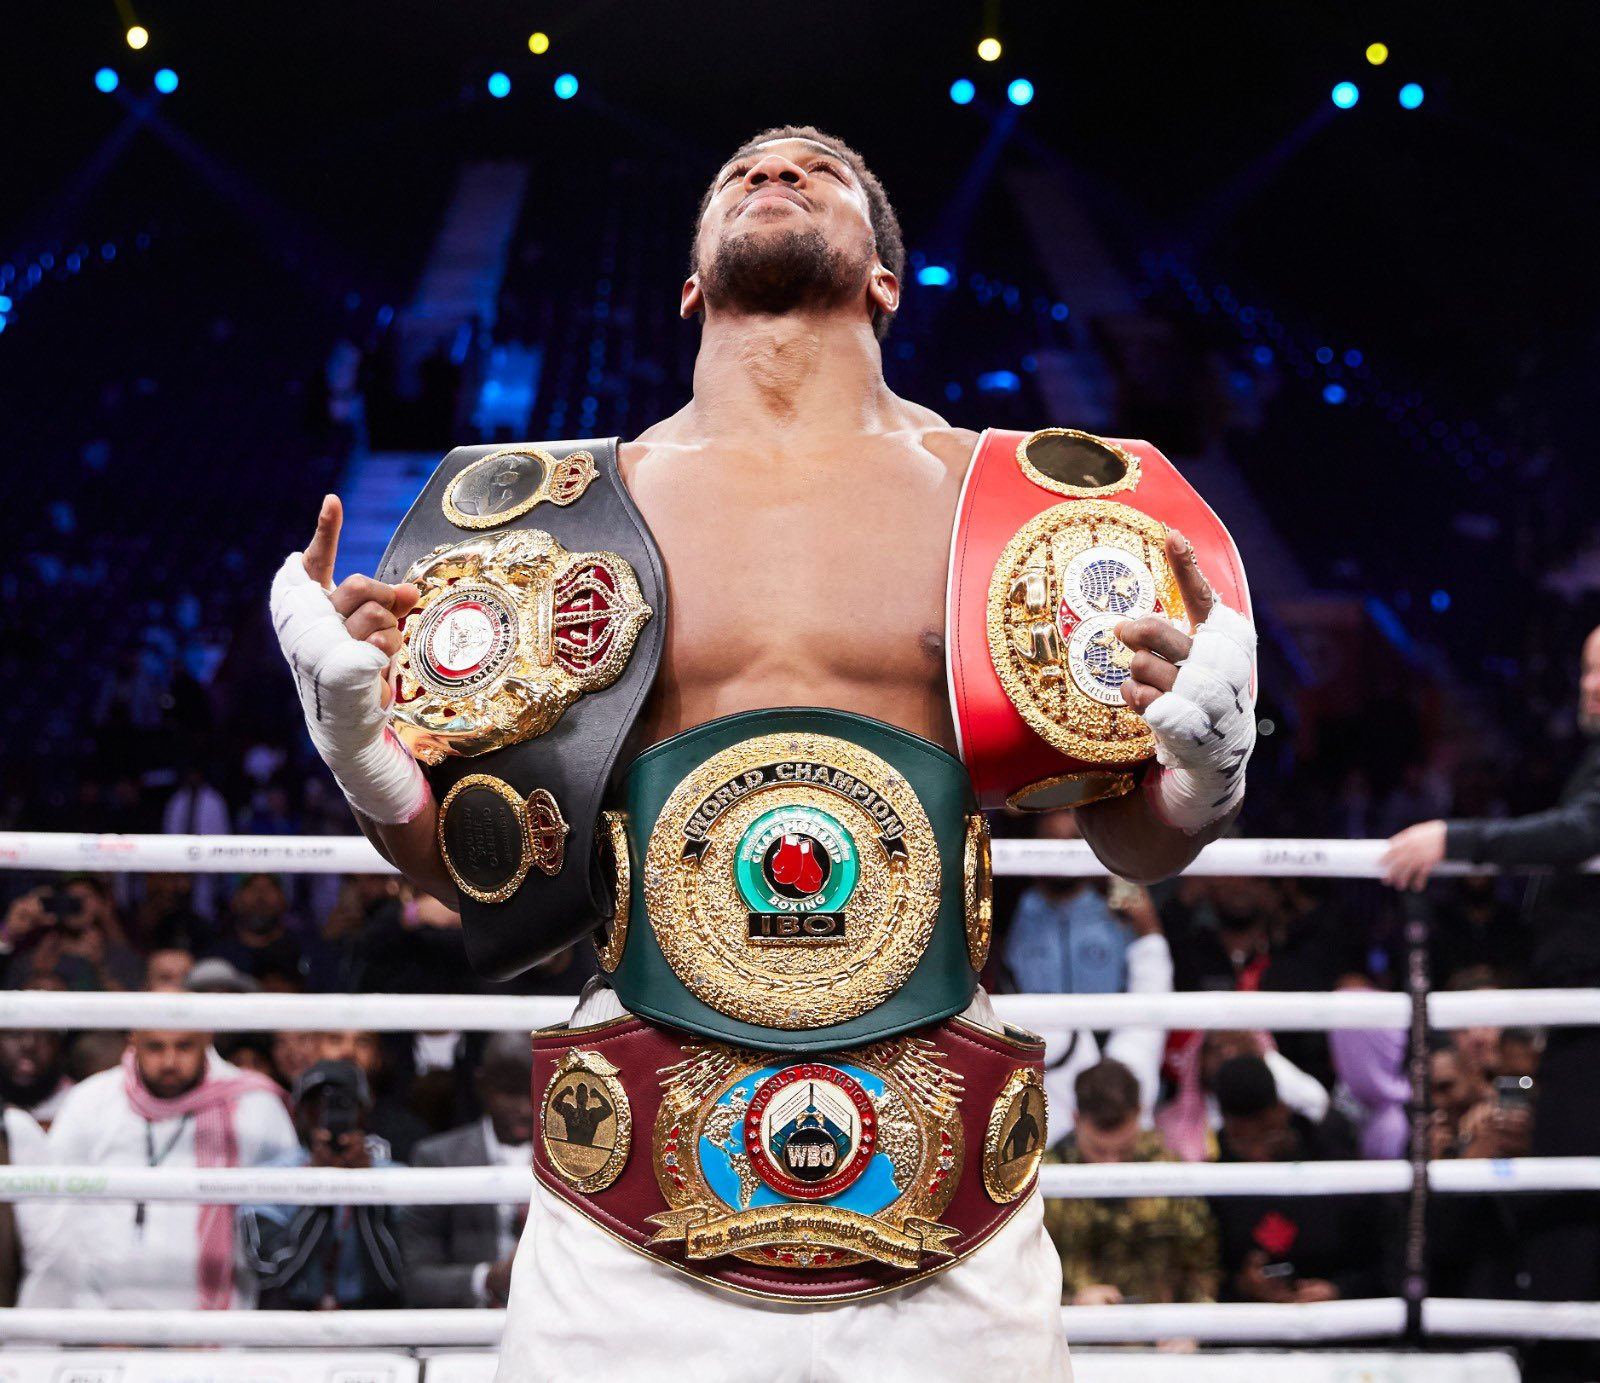 Anthony Joshua to defend his WBO title against Oleksandr Usyk